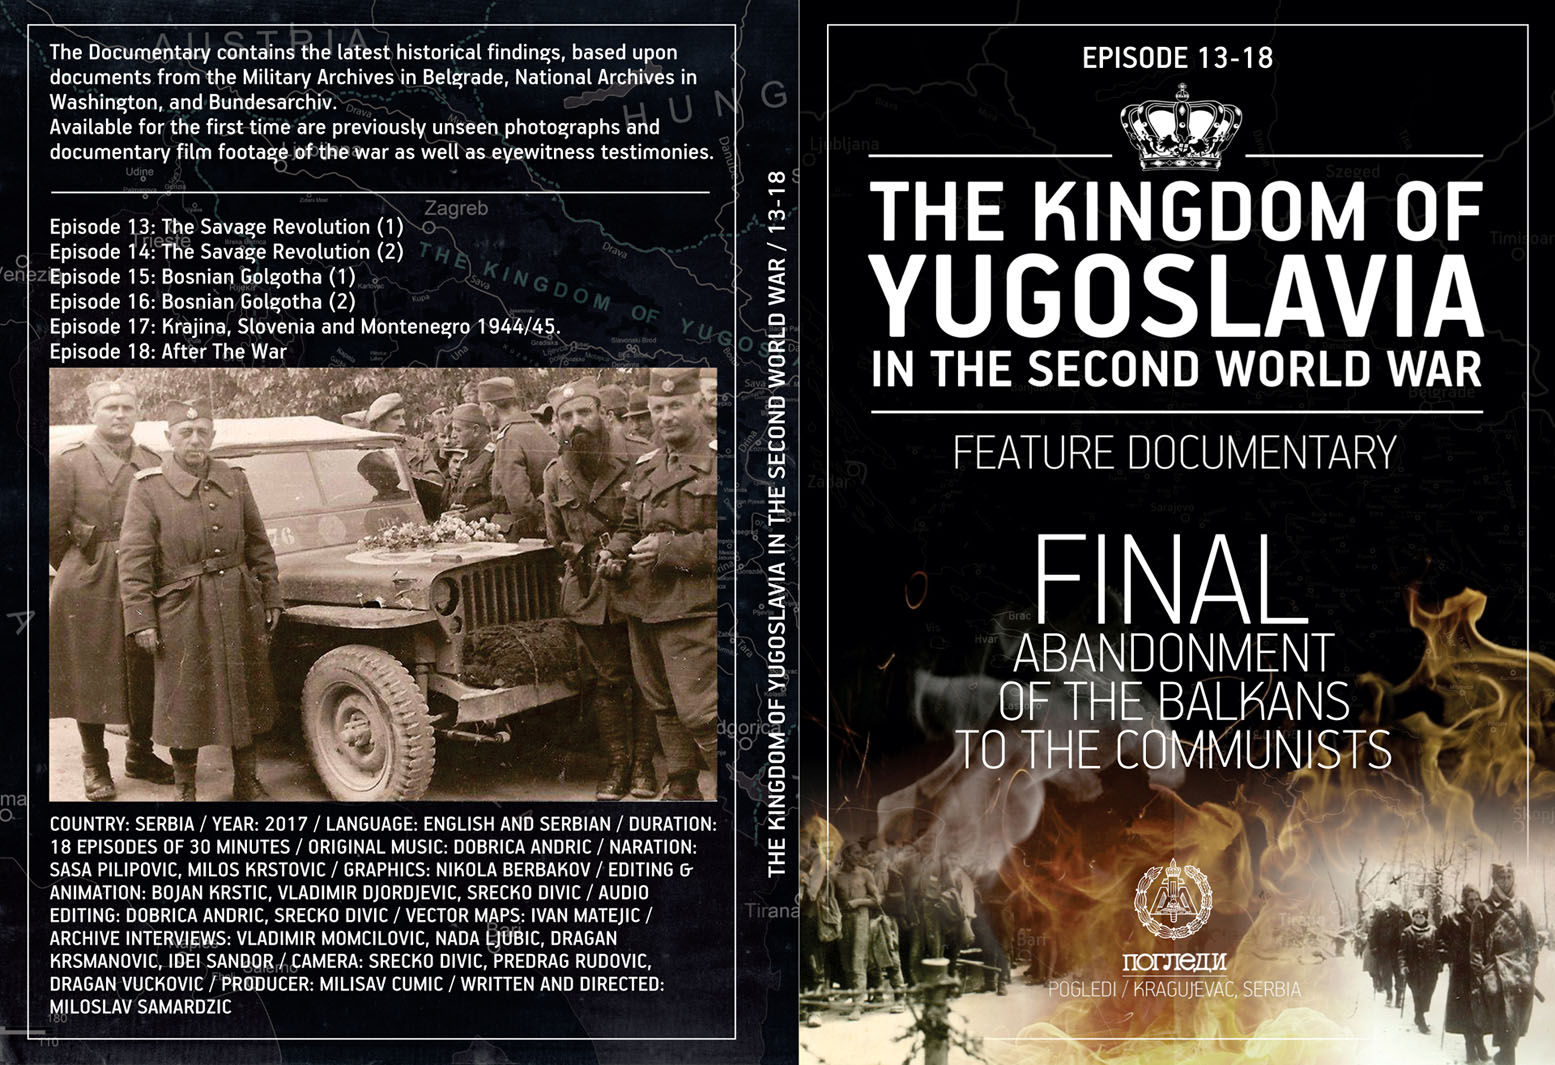 Forbidden history: WW2 documentary series now complete |